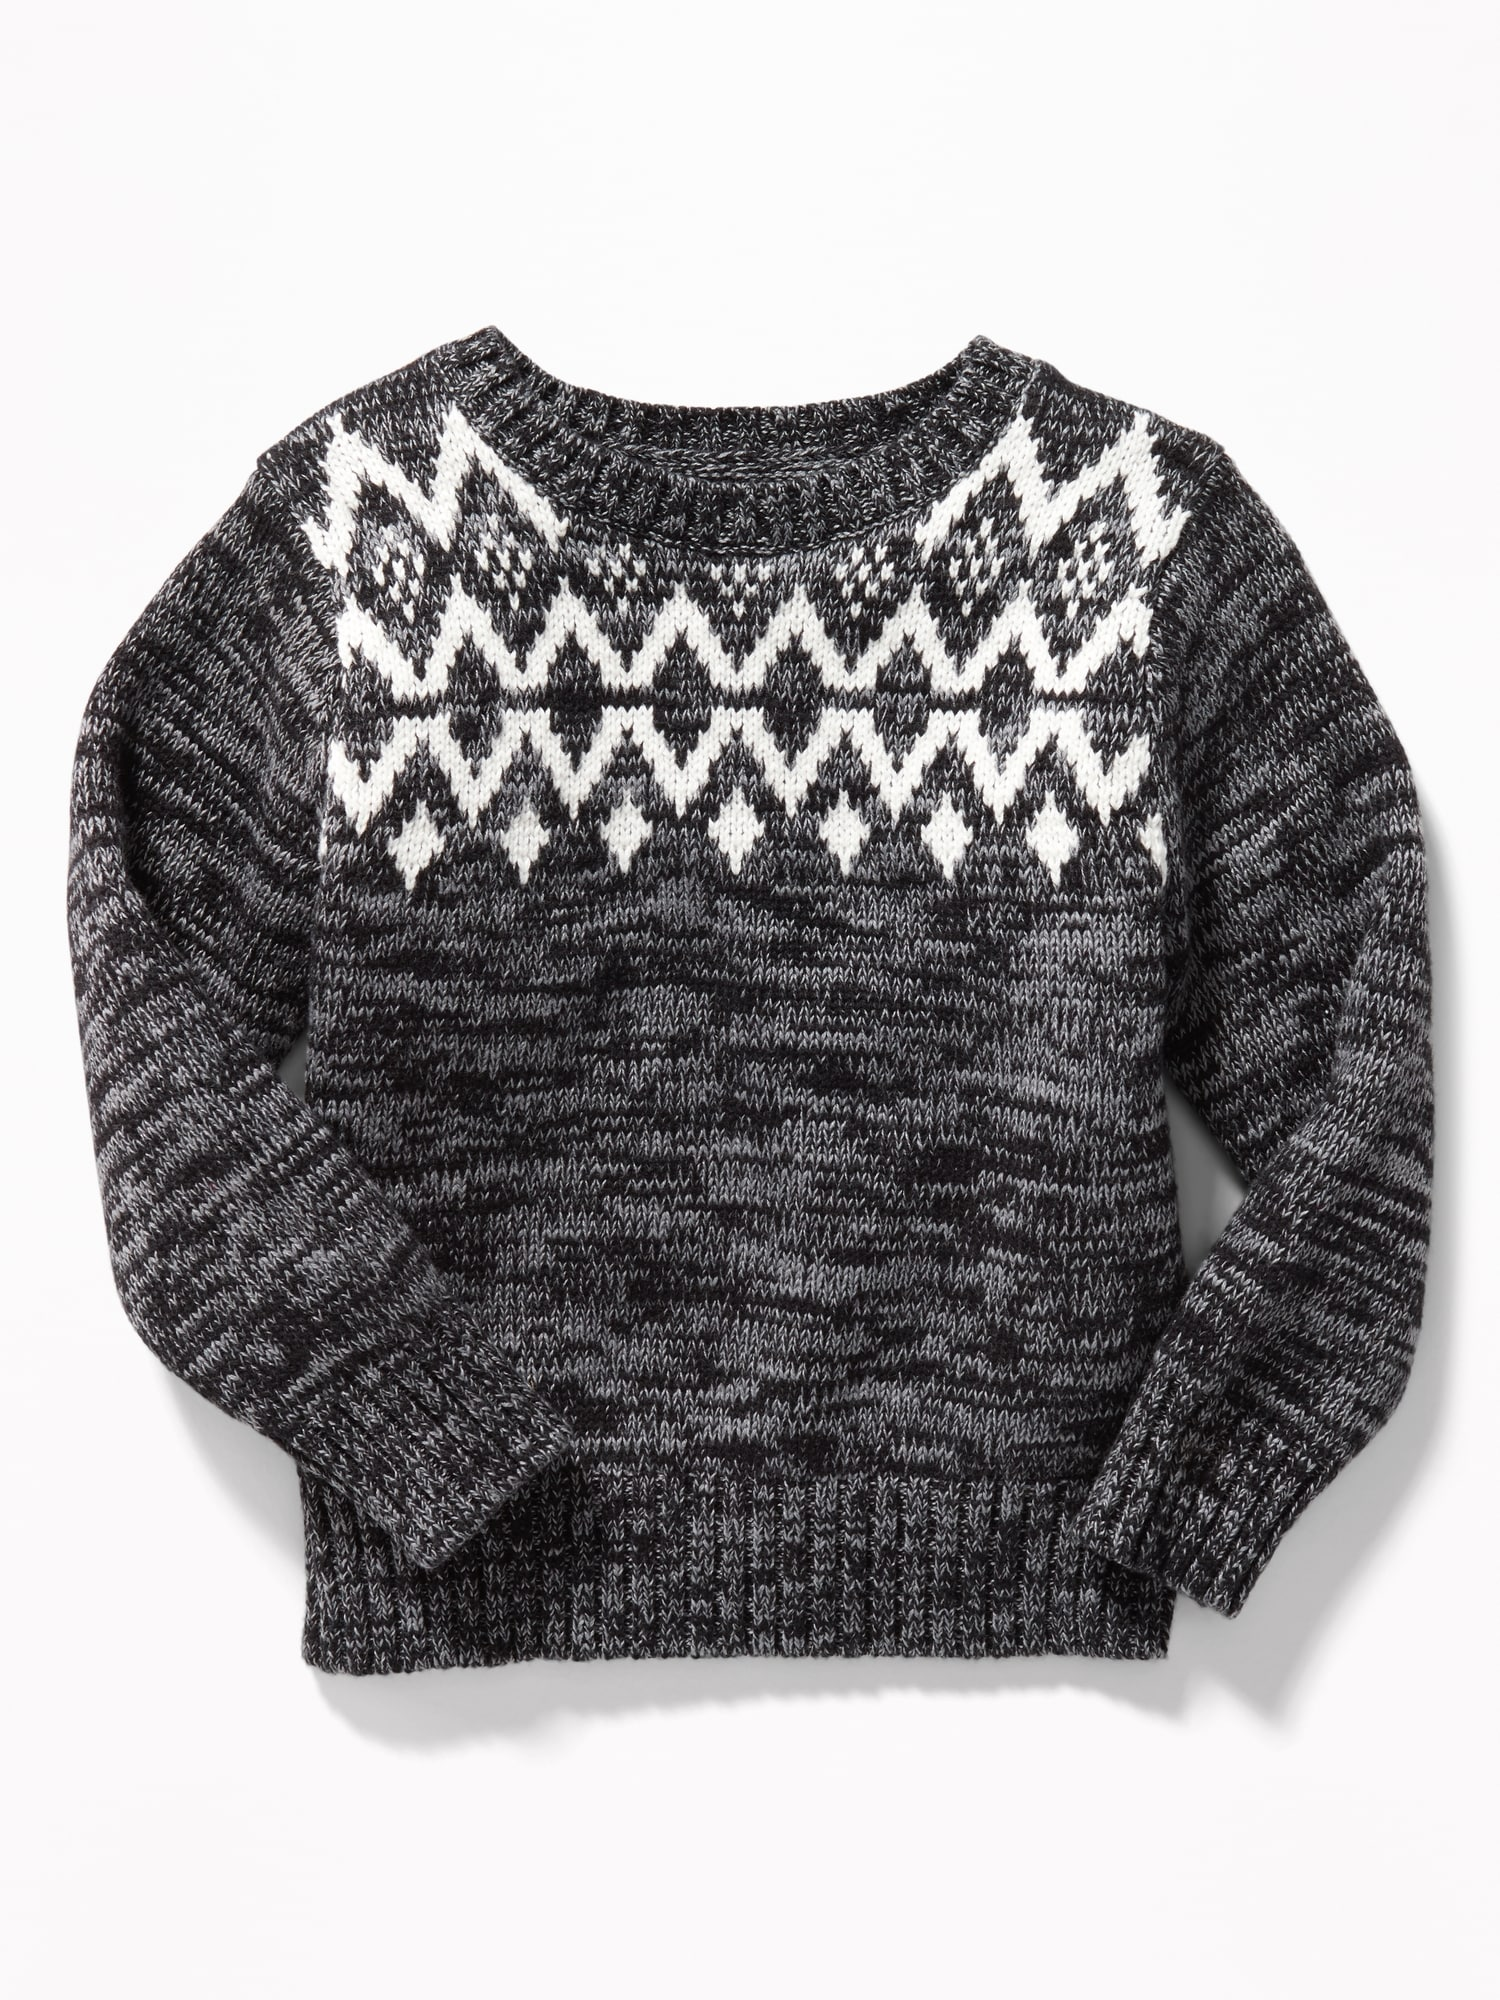 Fair Isle Sweater for Toddler Boys | Old Navy